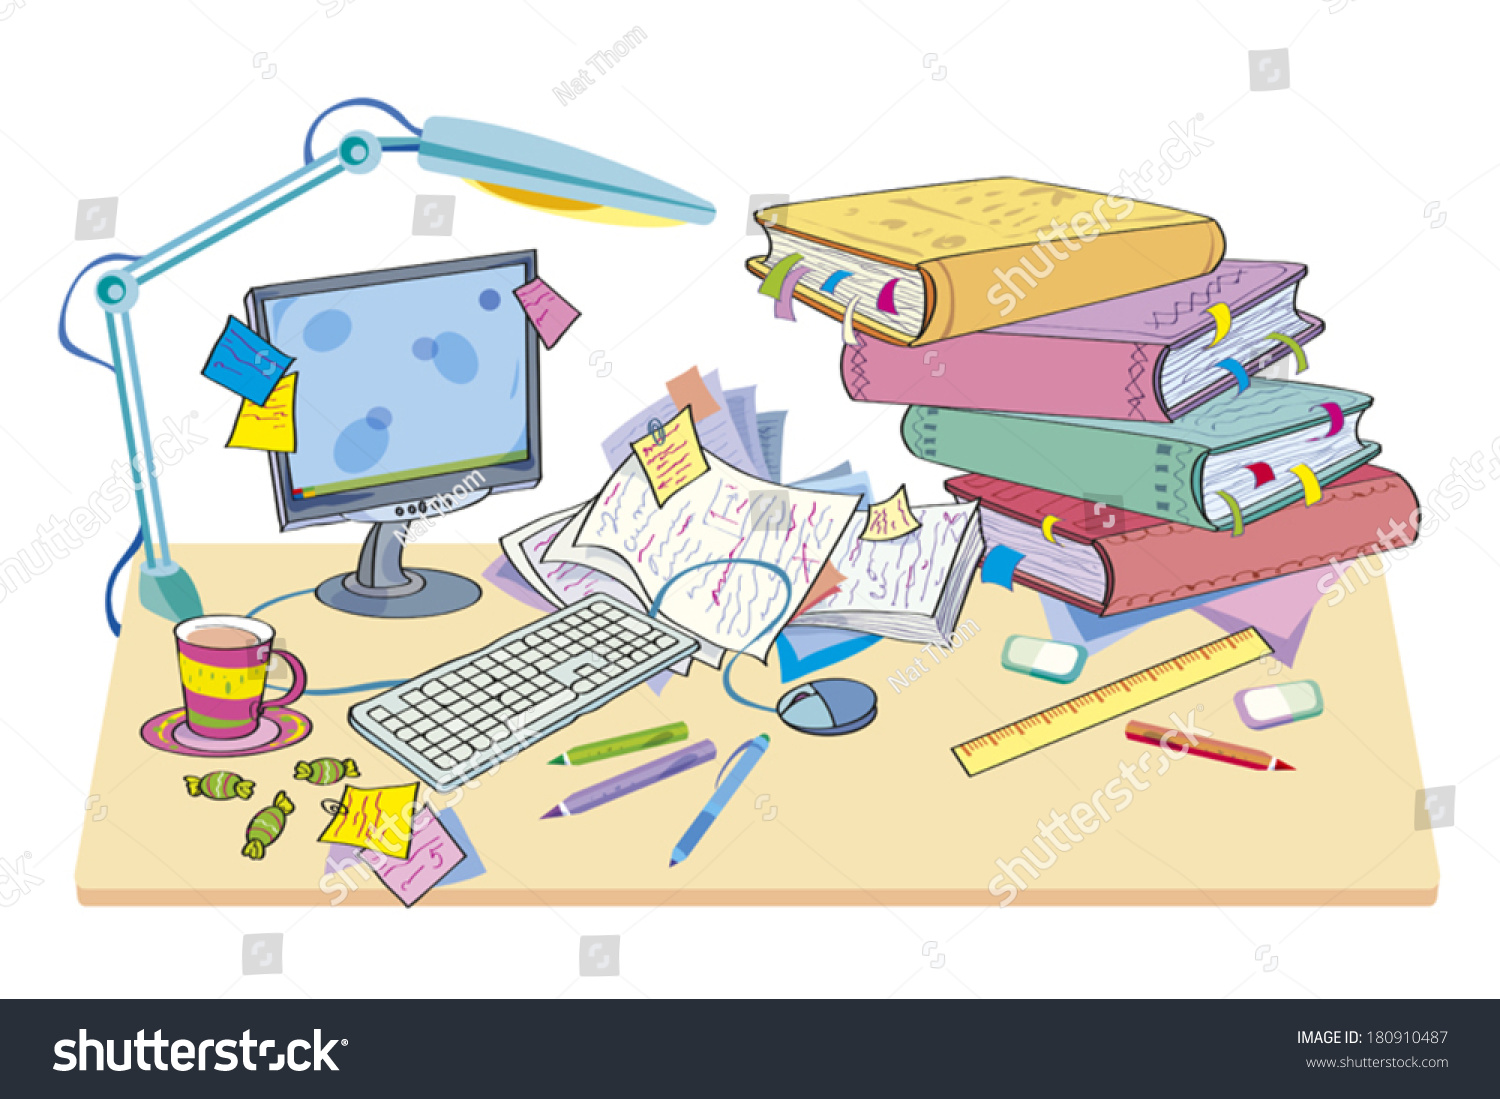 desk computer books disorder on desk stock vector  desk the computer and books disorder on a desk are scattered books